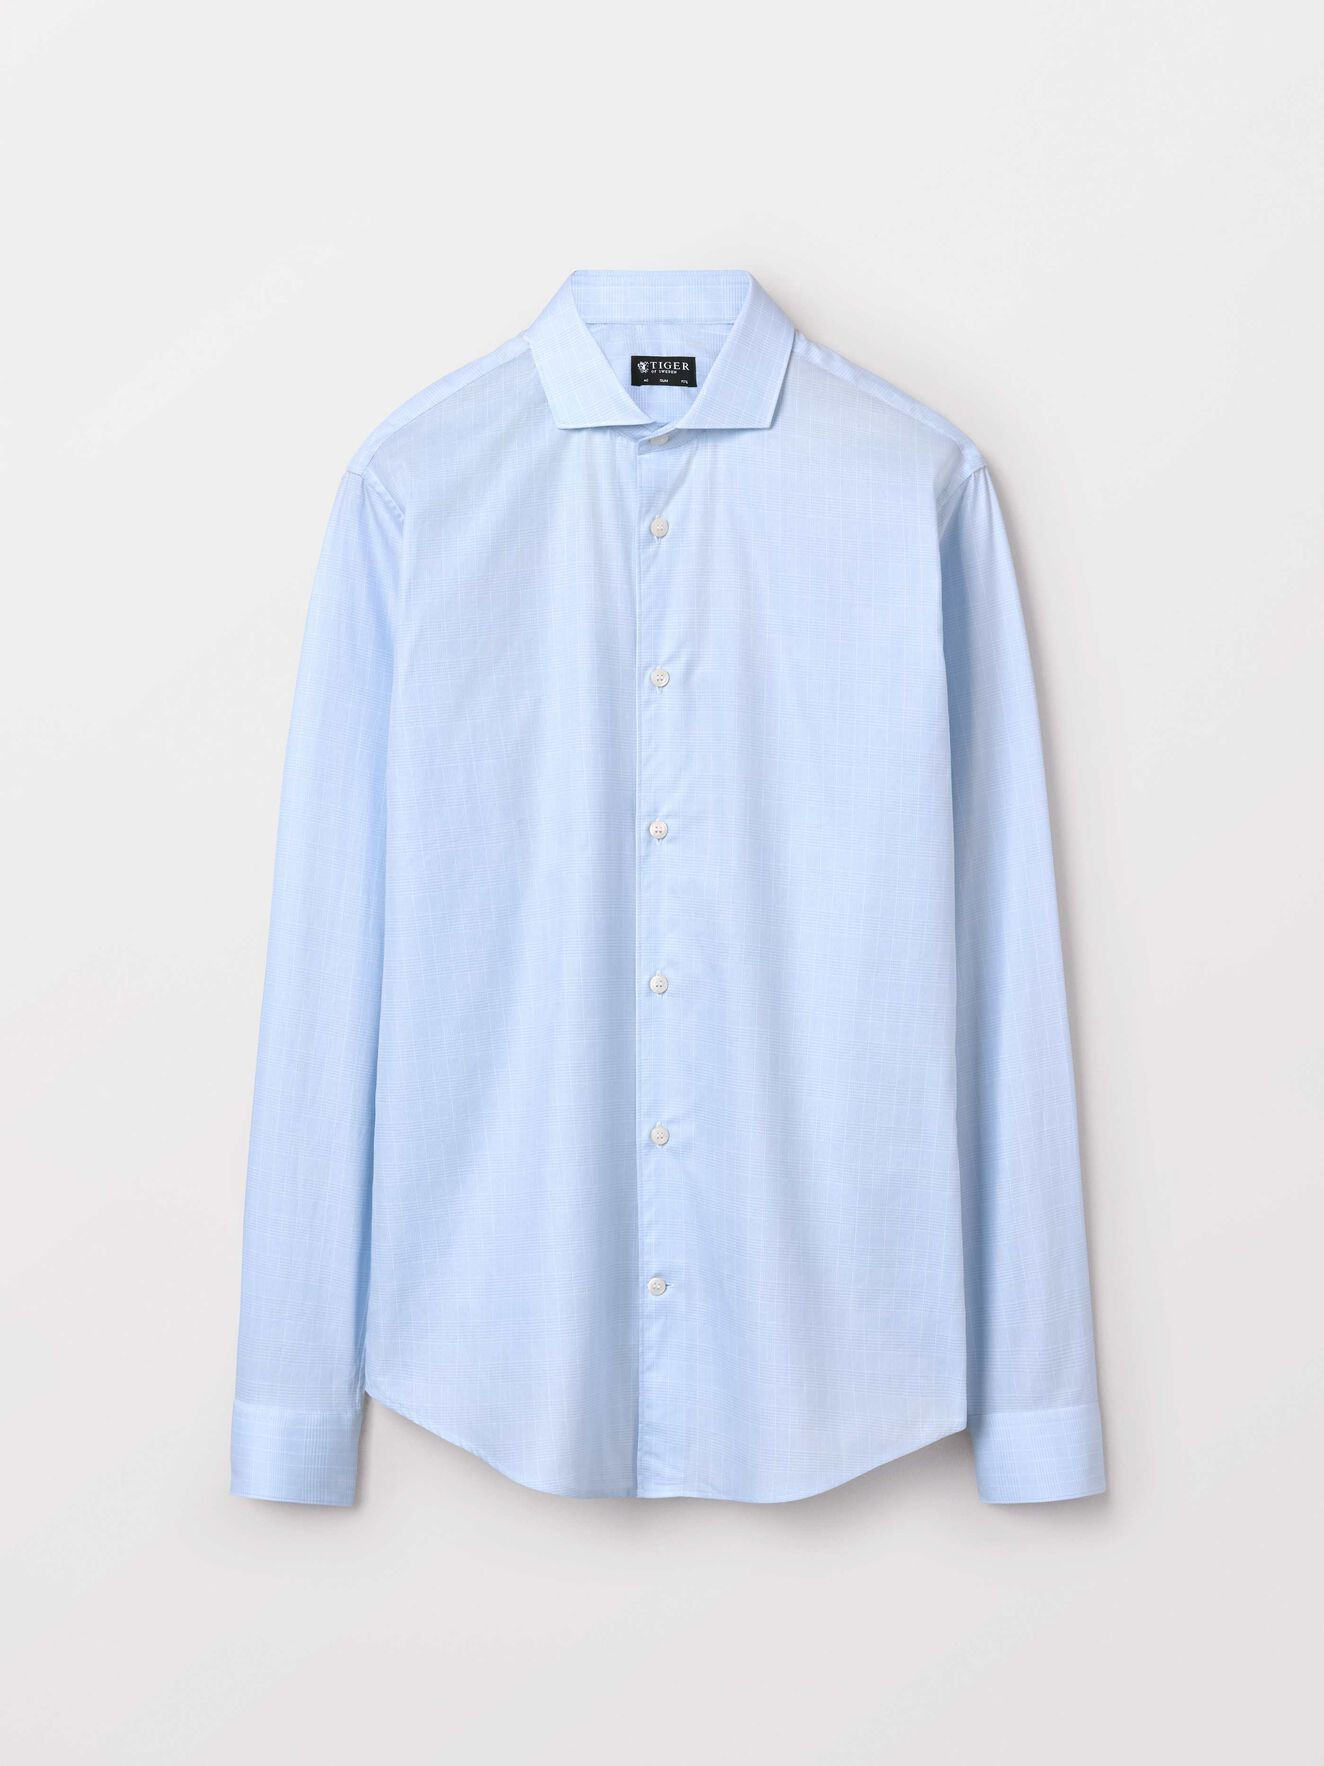 Farrell 5 Shirt in Pastelblue from Tiger of Sweden